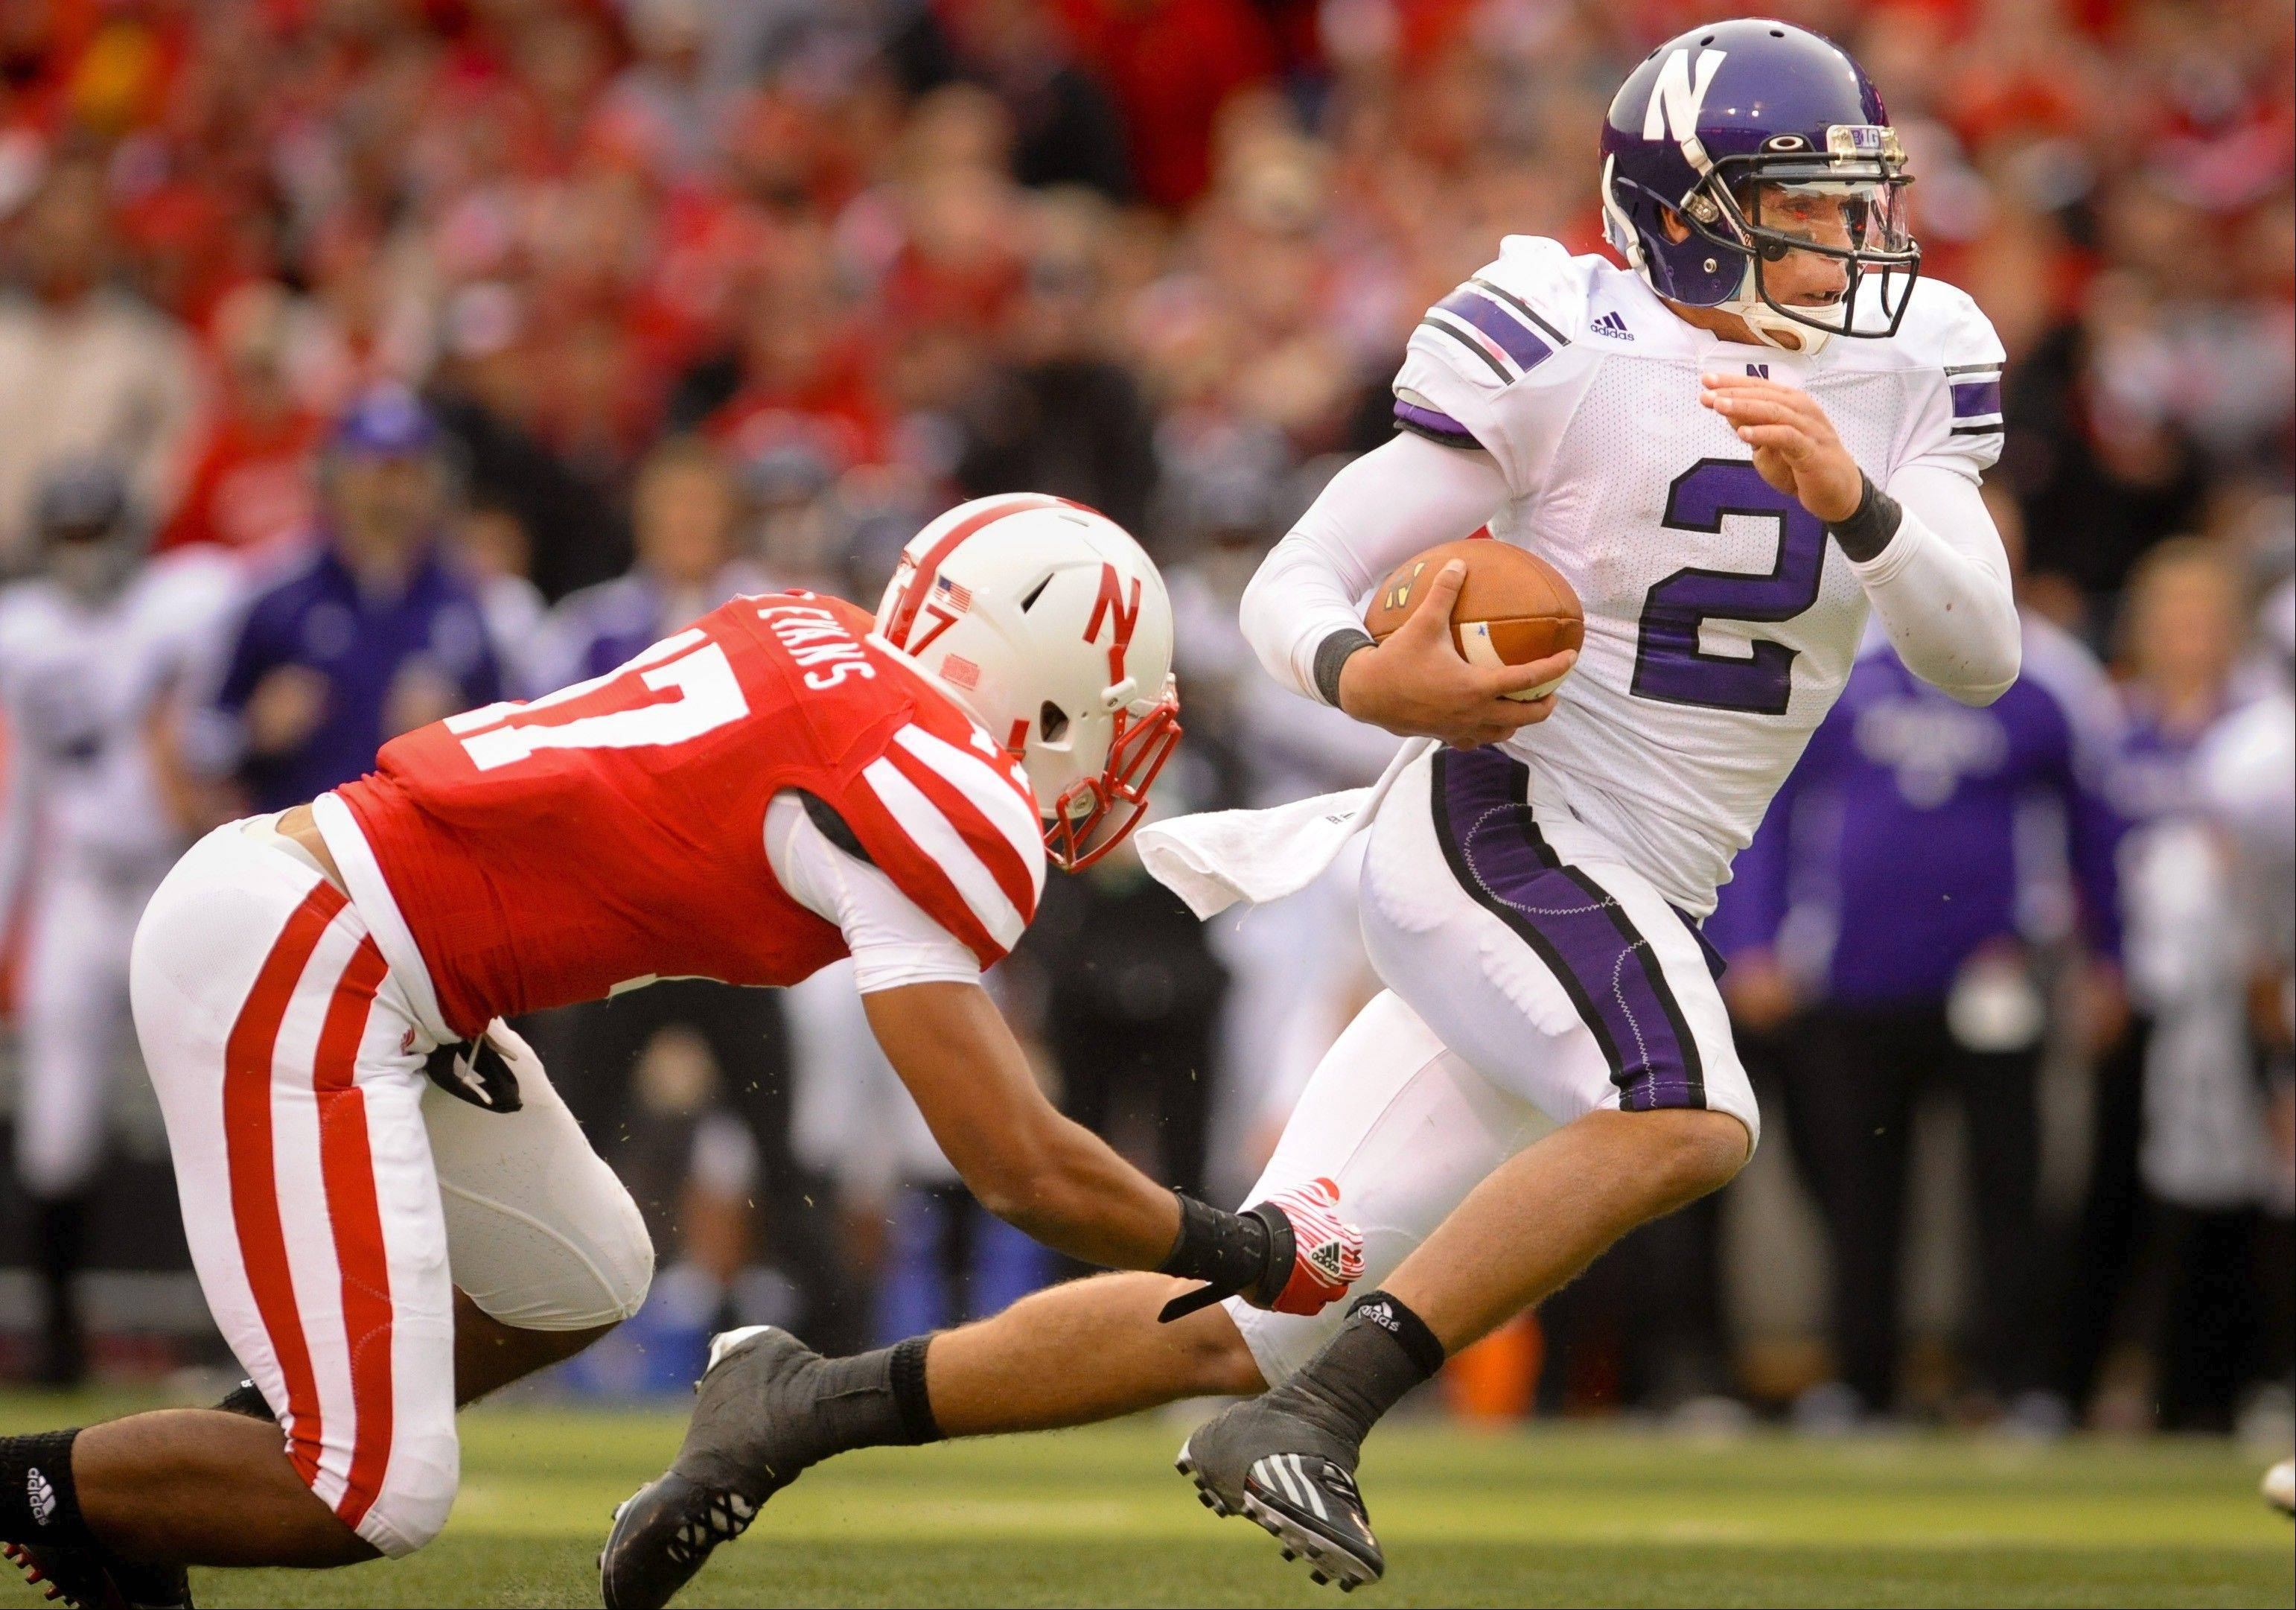 A year ago, Northwestern's Kain Colter helped Northwestern slip past Nebraska for a huge road win. Now the Wildcats are looking for their seventh win of the season as they host the Huskers on Saturday.